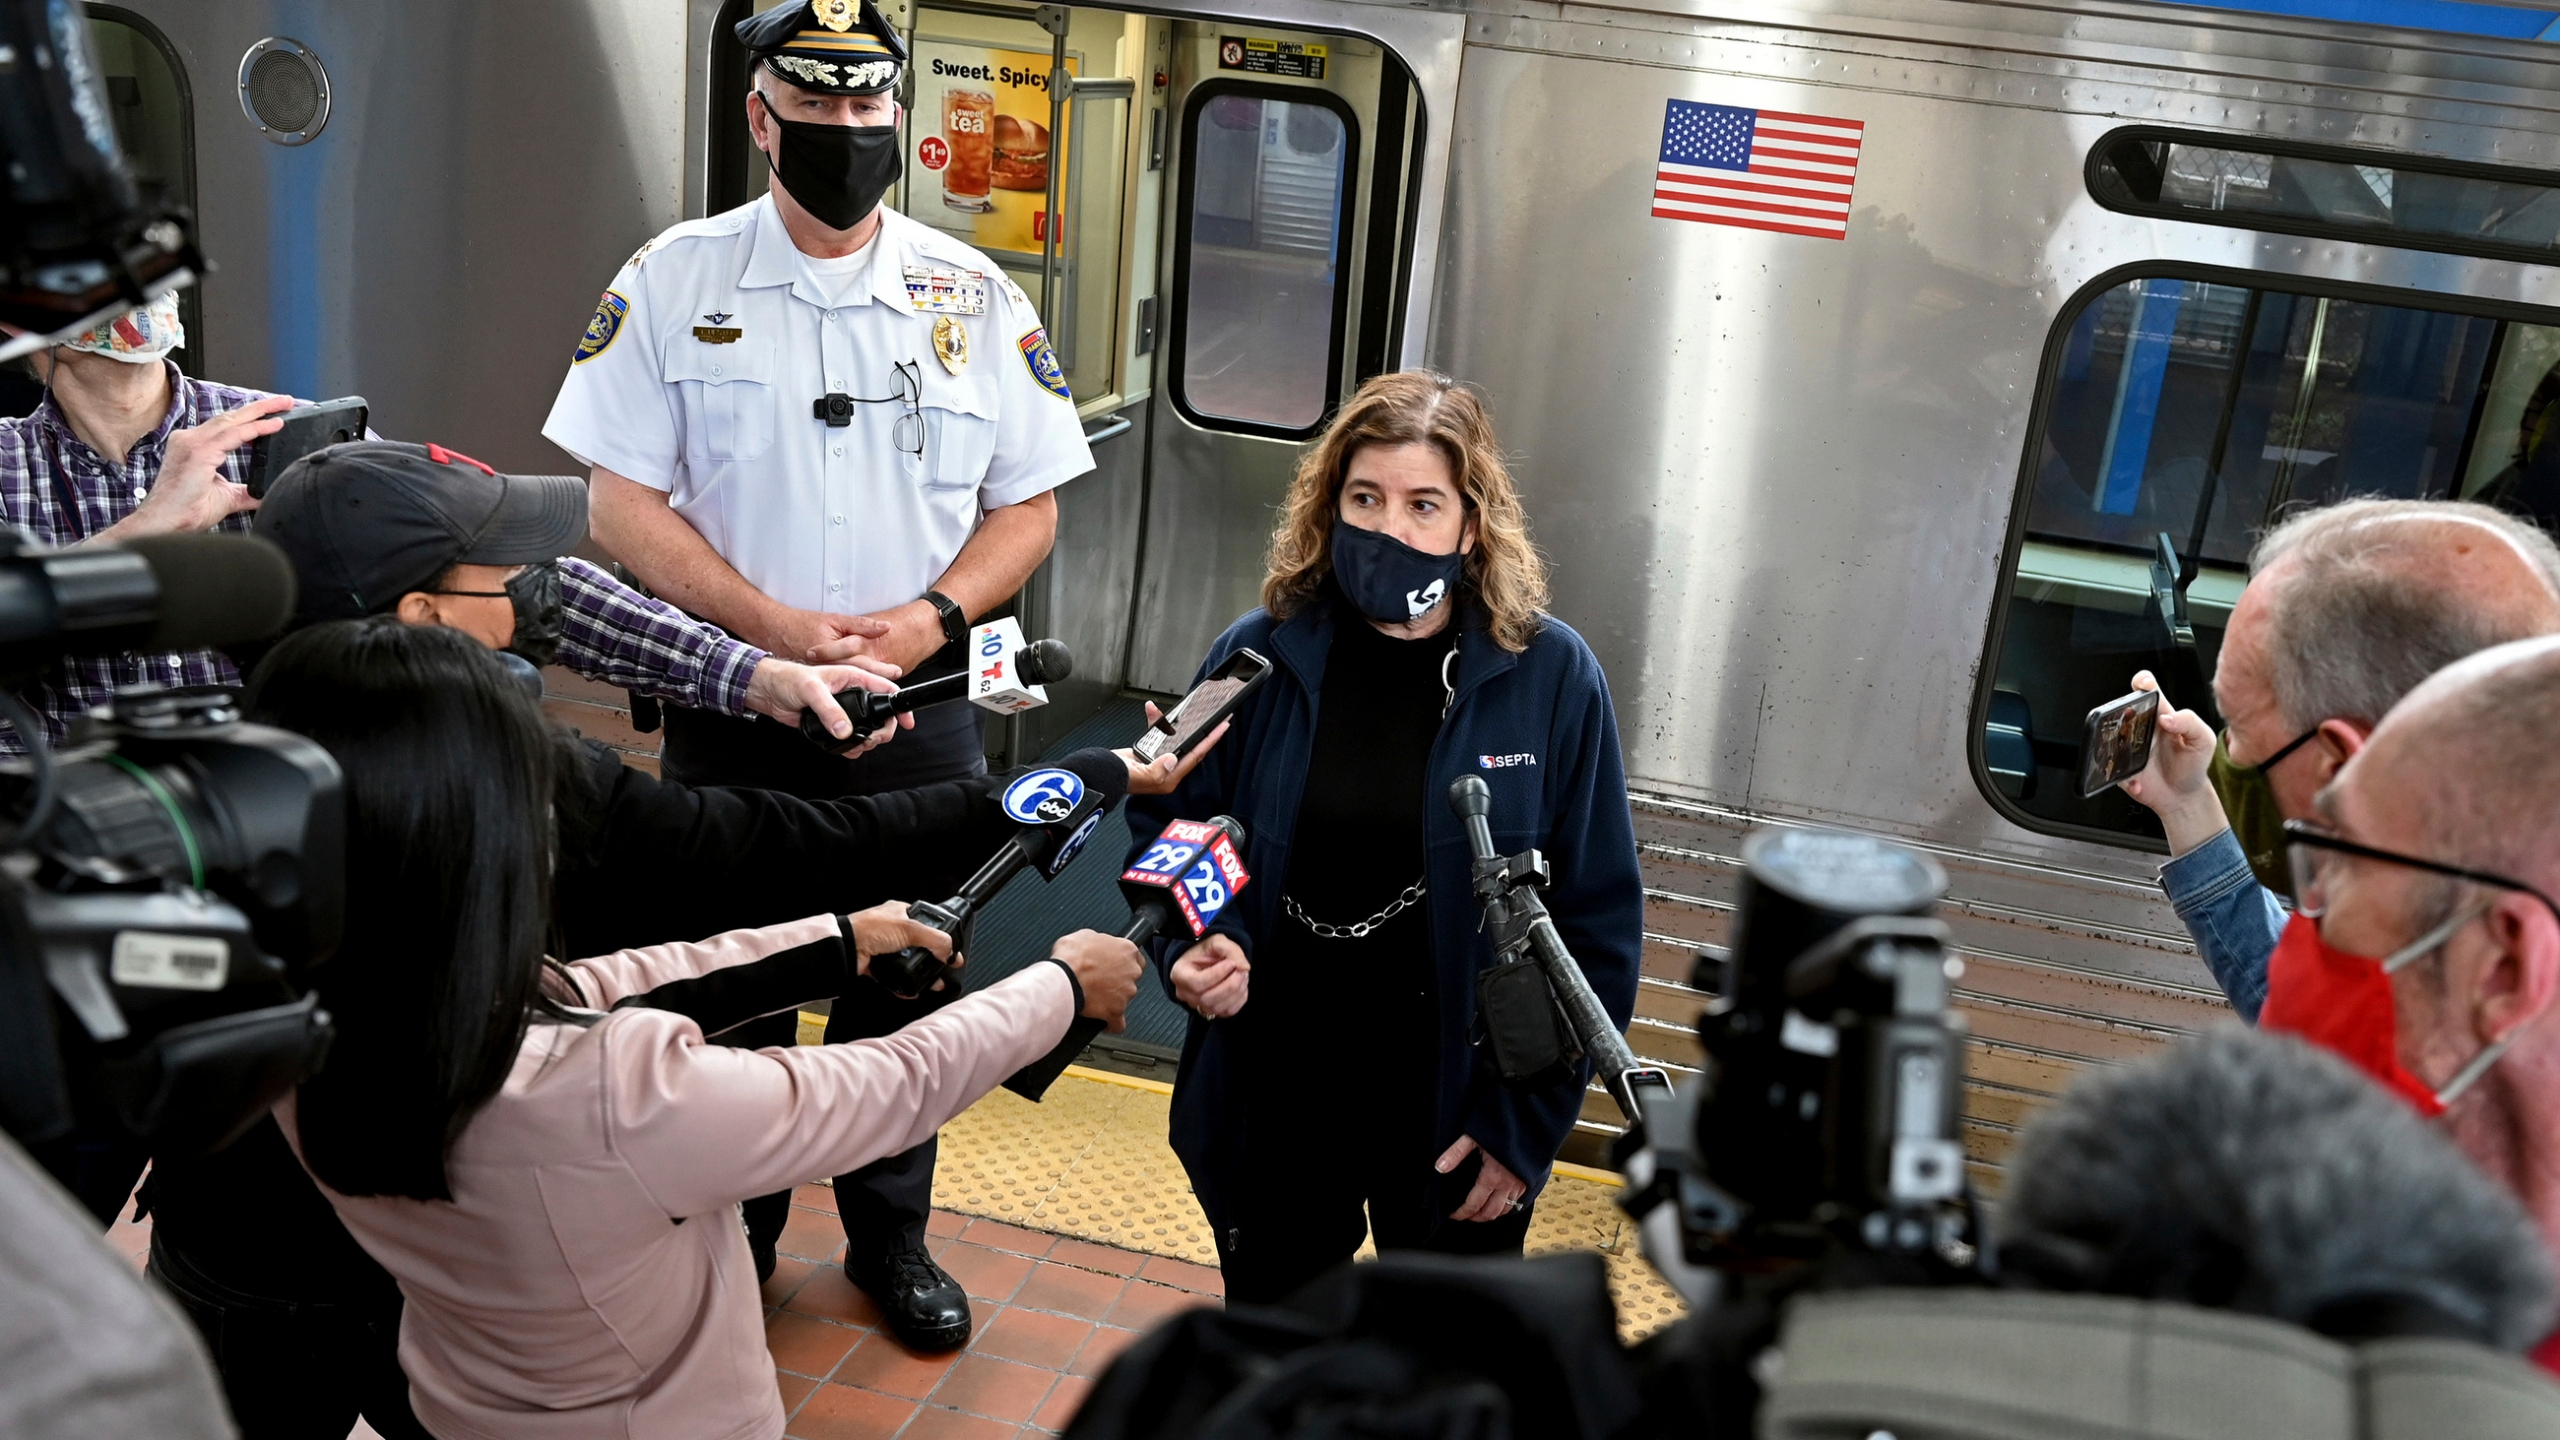 SEPTA General Manager Leslie Richards speaks during a news conference as SEPTA Transit Police Chief Thomas Nestel III stands behind her on an El platform at the 69th Street Transportation Center, Monday, Oct. 18, 2021, in Philadelphia, following a brutal rape on the El, as other riders watched, over the weekend. They discussed the emergency call boxes on SEPTA trains and how to properly contact police from the trains. (Tom Gralish/The Philadelphia Inquirer via AP)